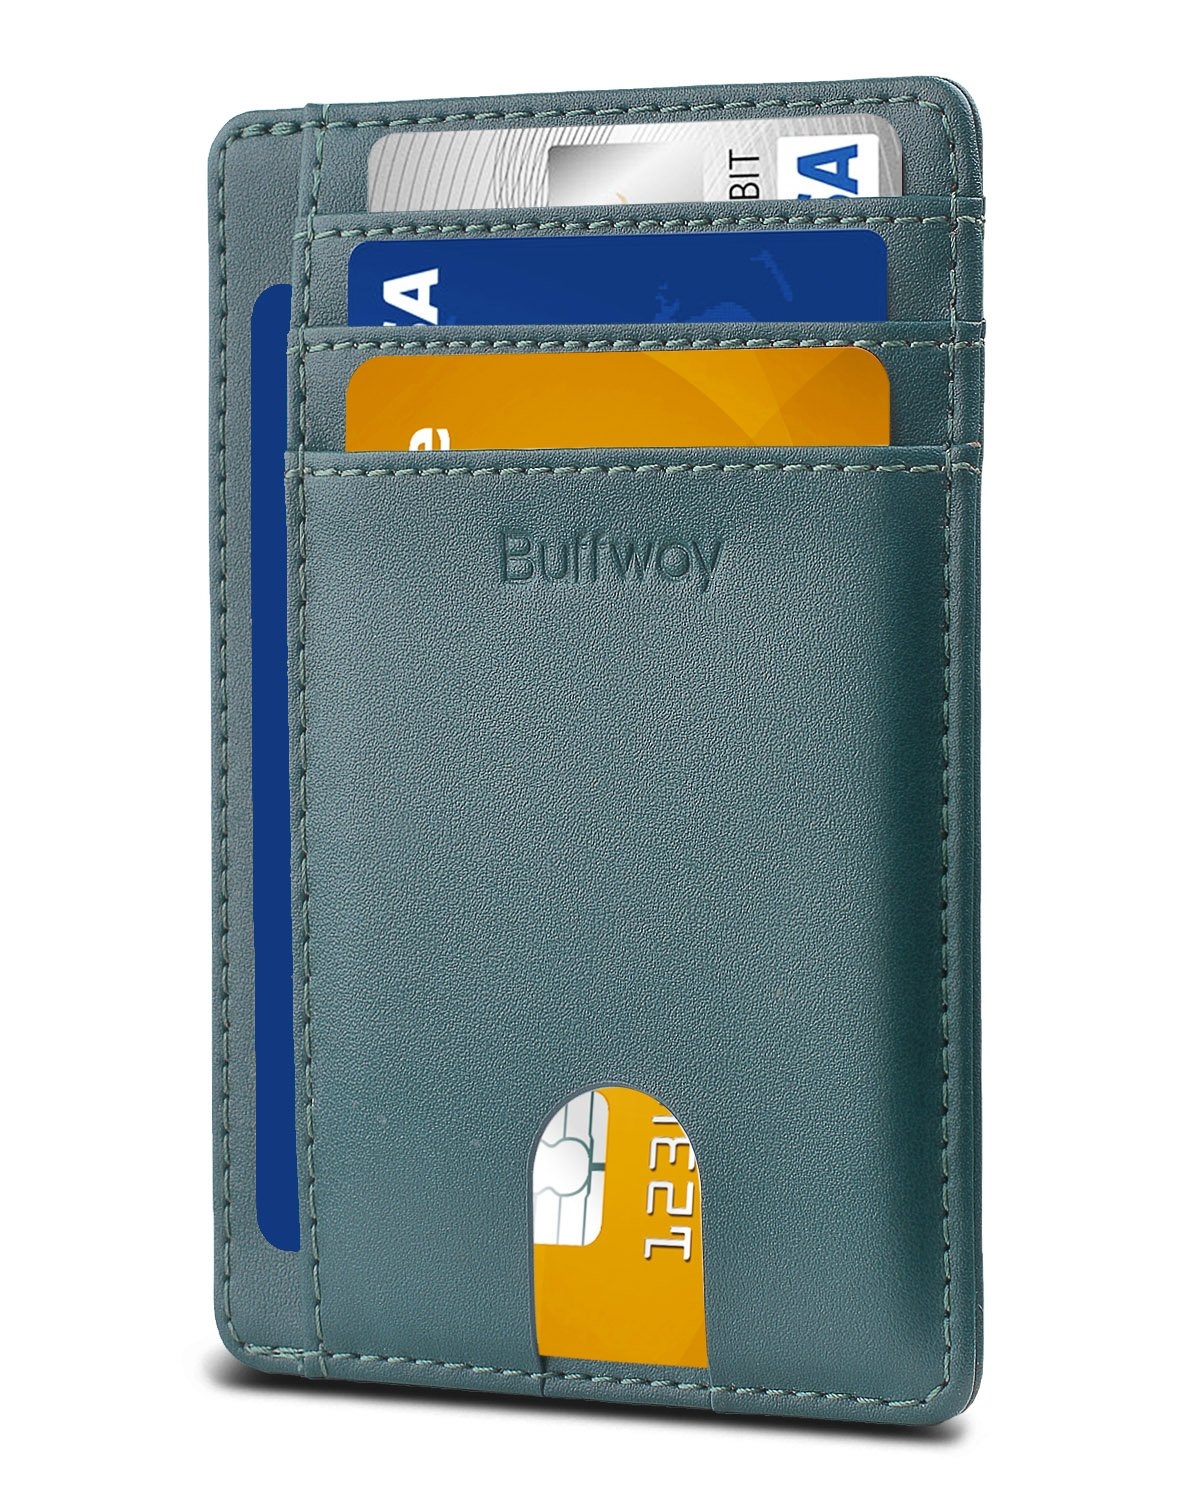 Buffway Slim Minimalist Front Pocket RFID Blocking Leather Wallets for Men Women BW-WL-VC-BL